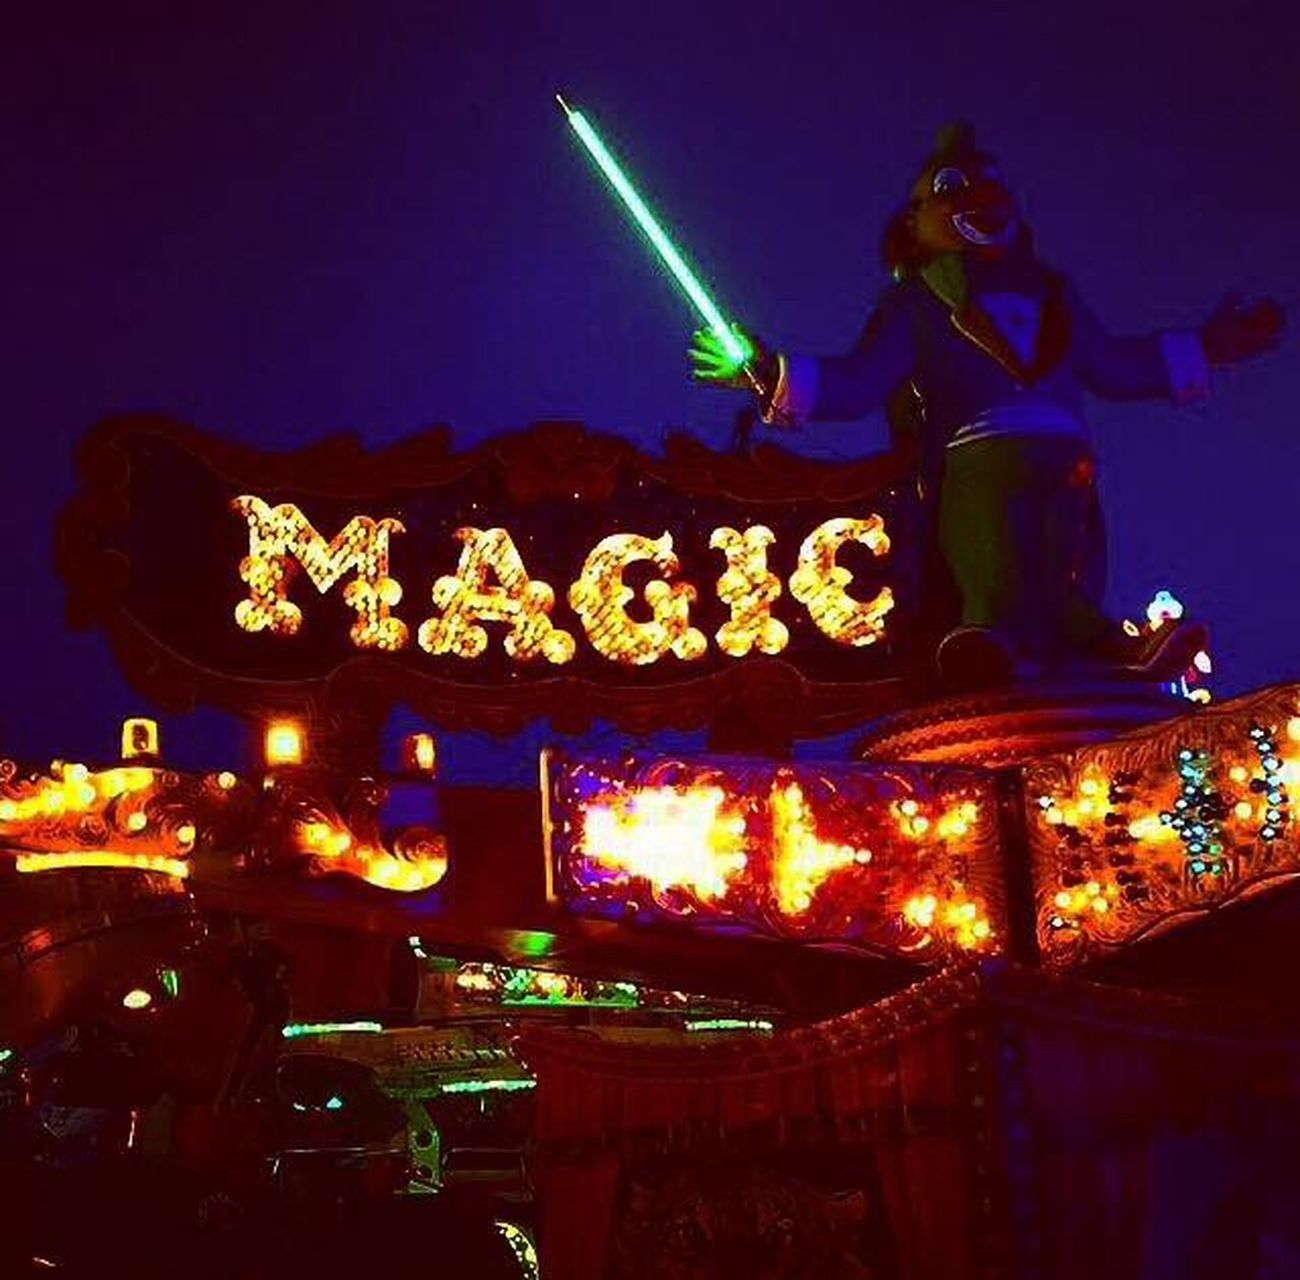 Kirmes Rummel Magdeburg Magic Schausteller Jahrmarkt Funfair Fairground HermannsMagic